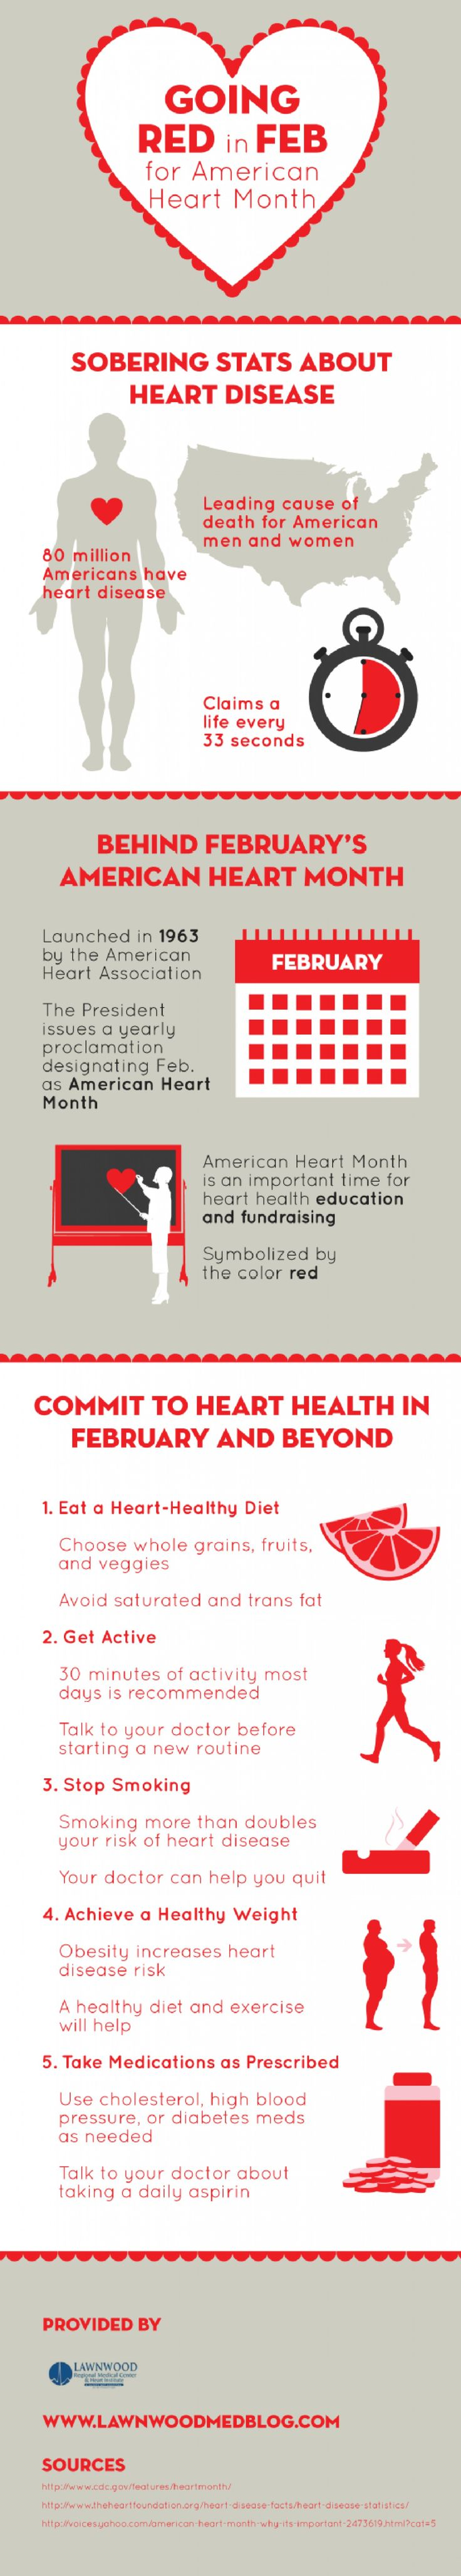 Go Red in February for American Heart Month - but apply these heart health lessons all year long! #fweverytime #livehealthy #livesmart